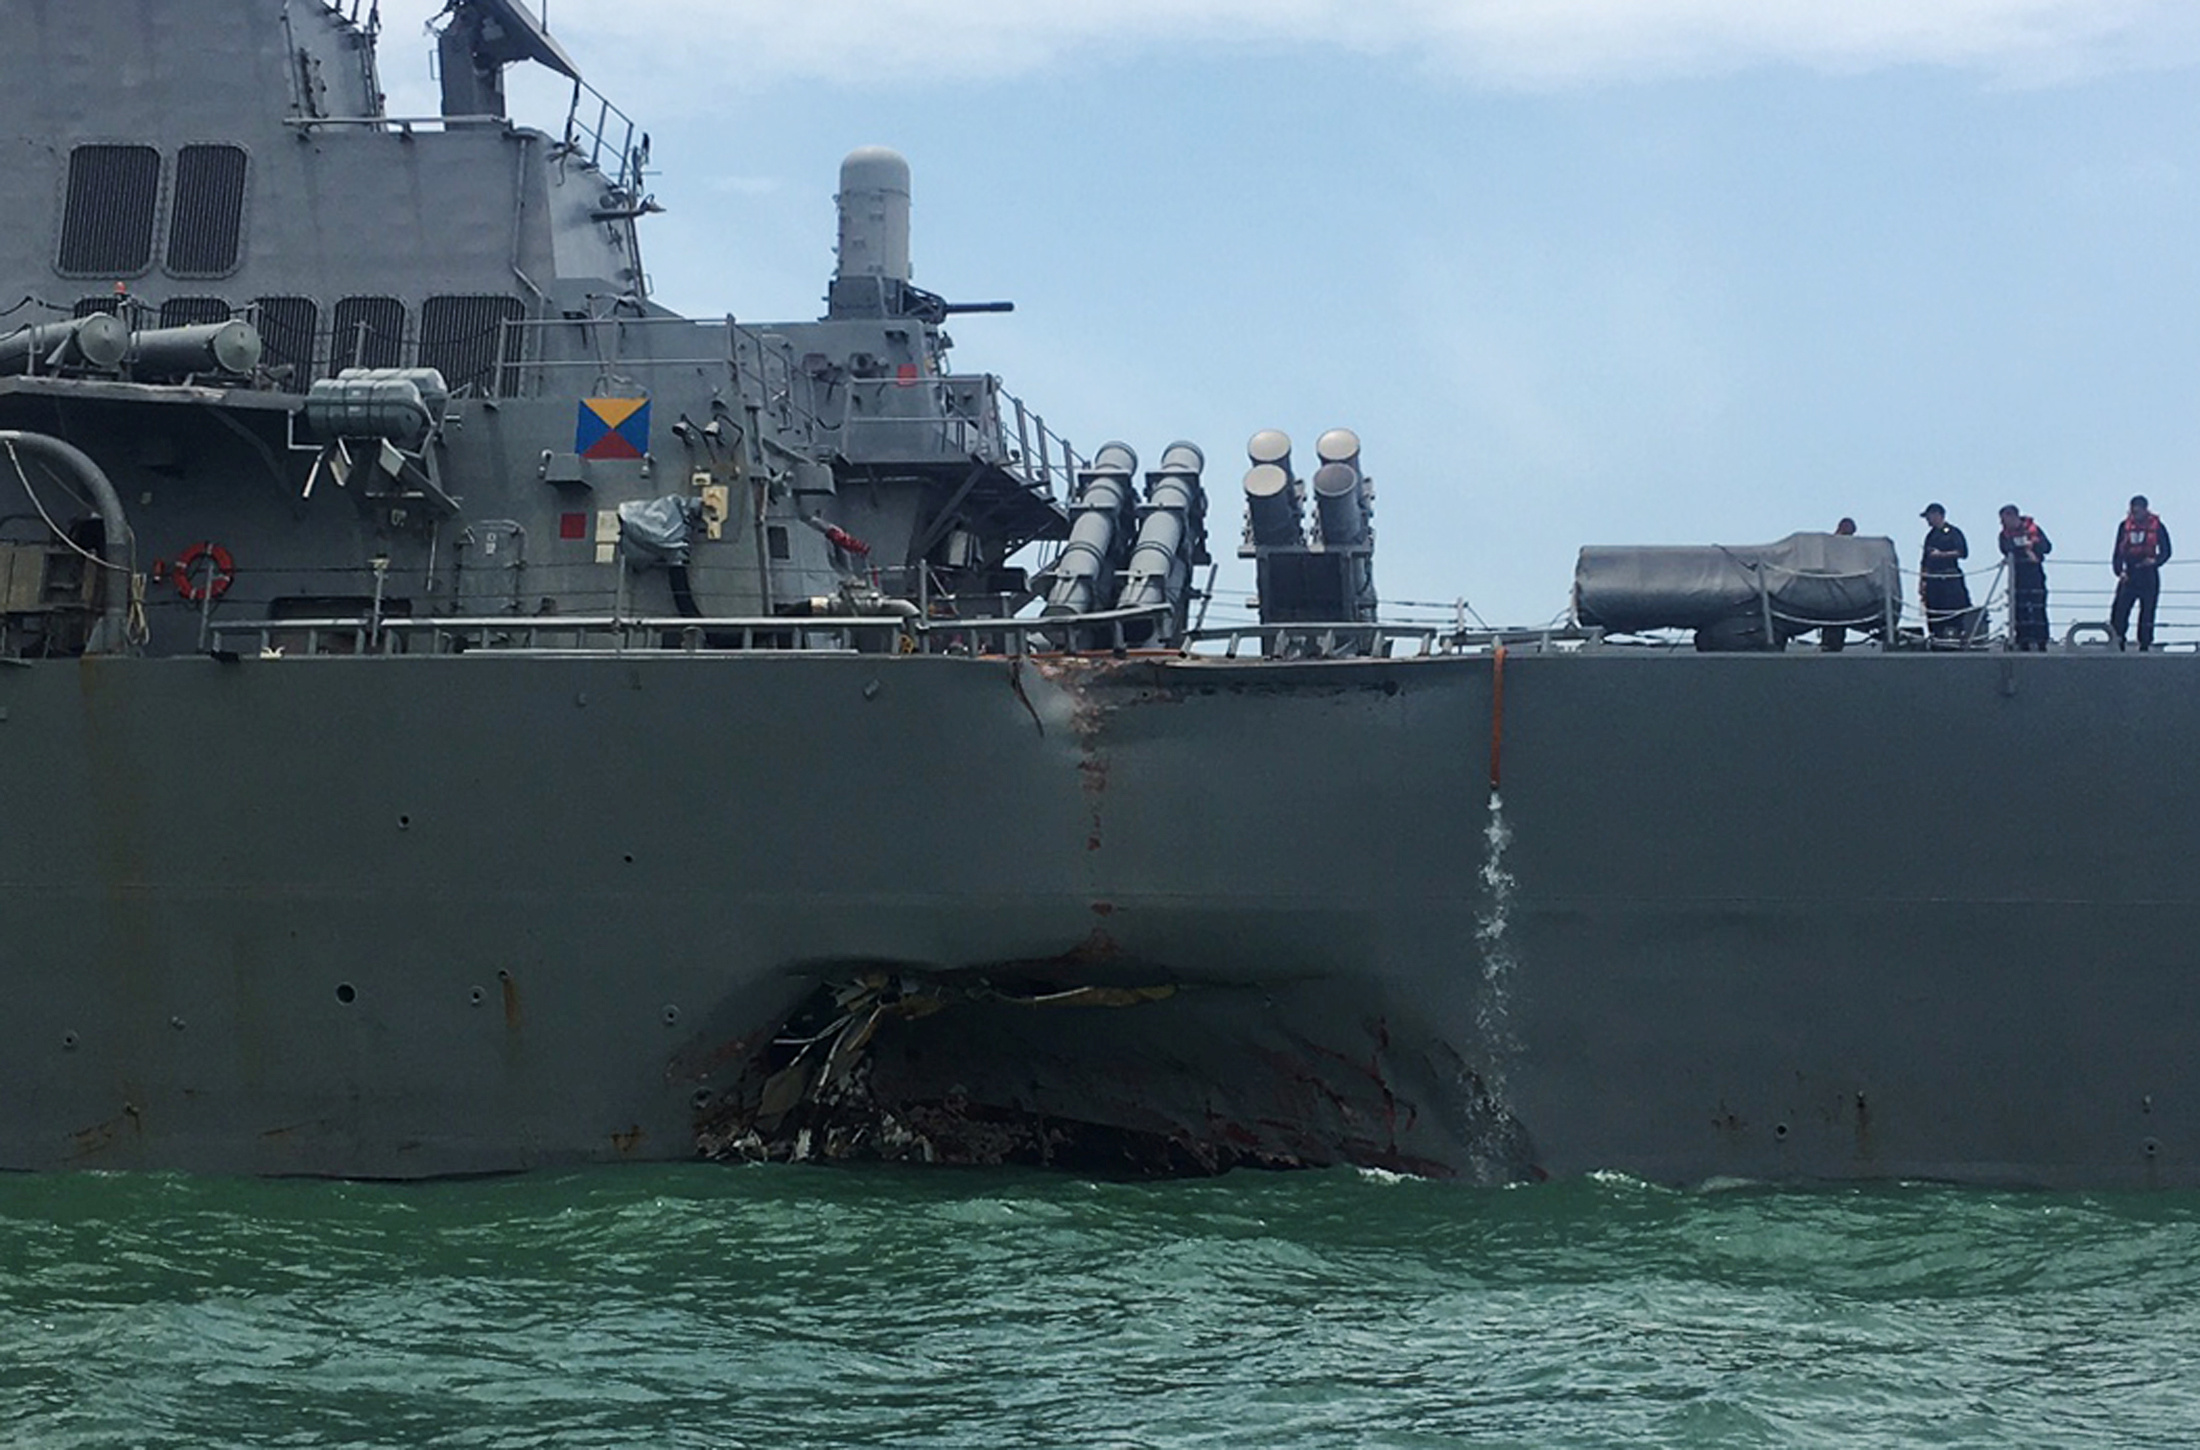 The U.S. Navy guided-missile destroyer USS John S. McCain is seen after a collision. REUTERS/Ahmad Masood